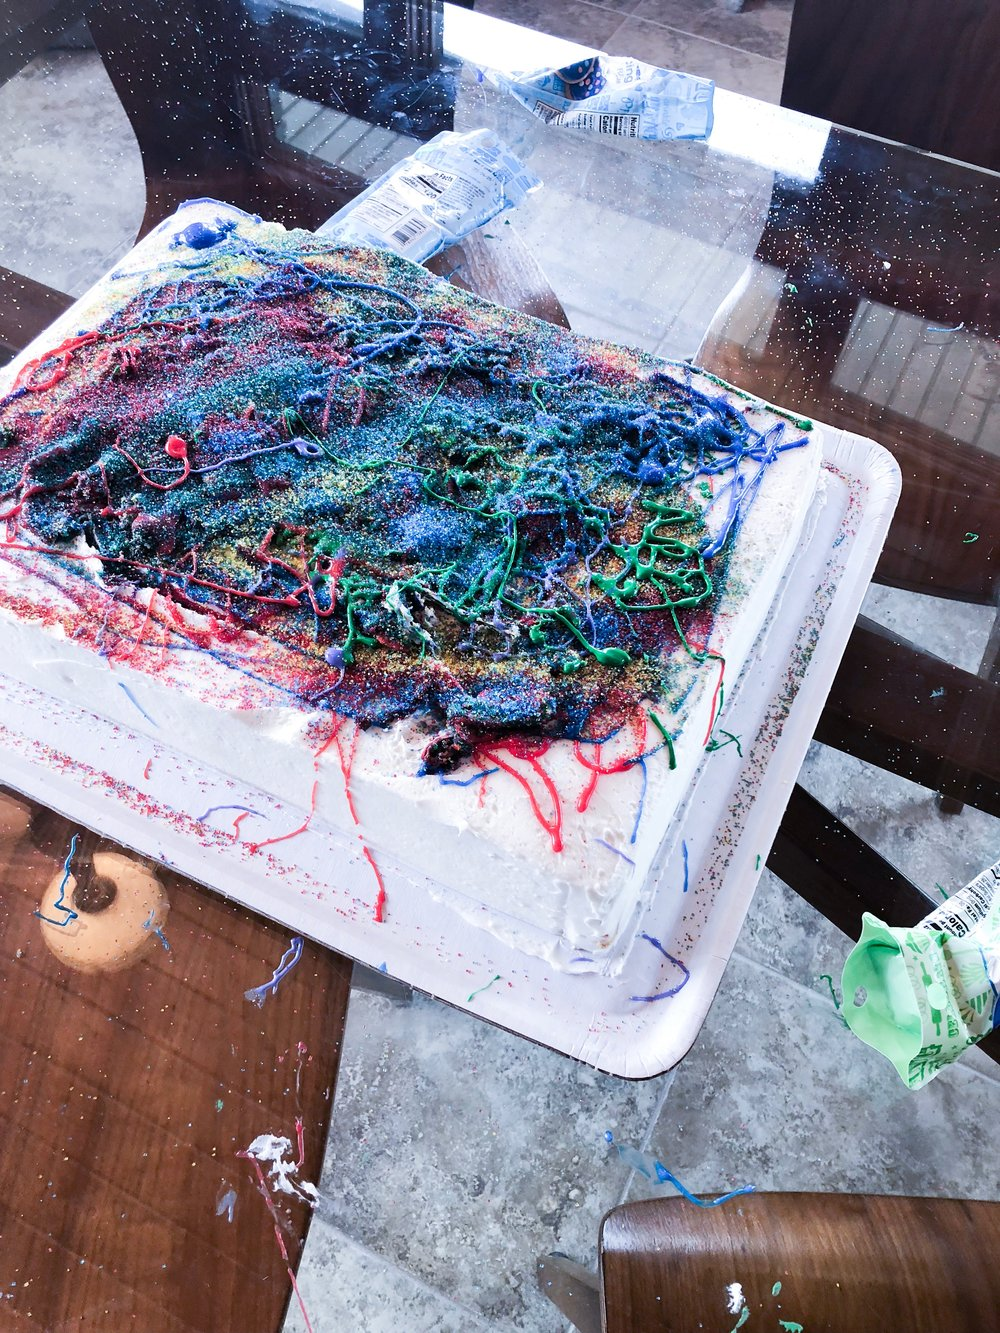 The end result of the cake decorating